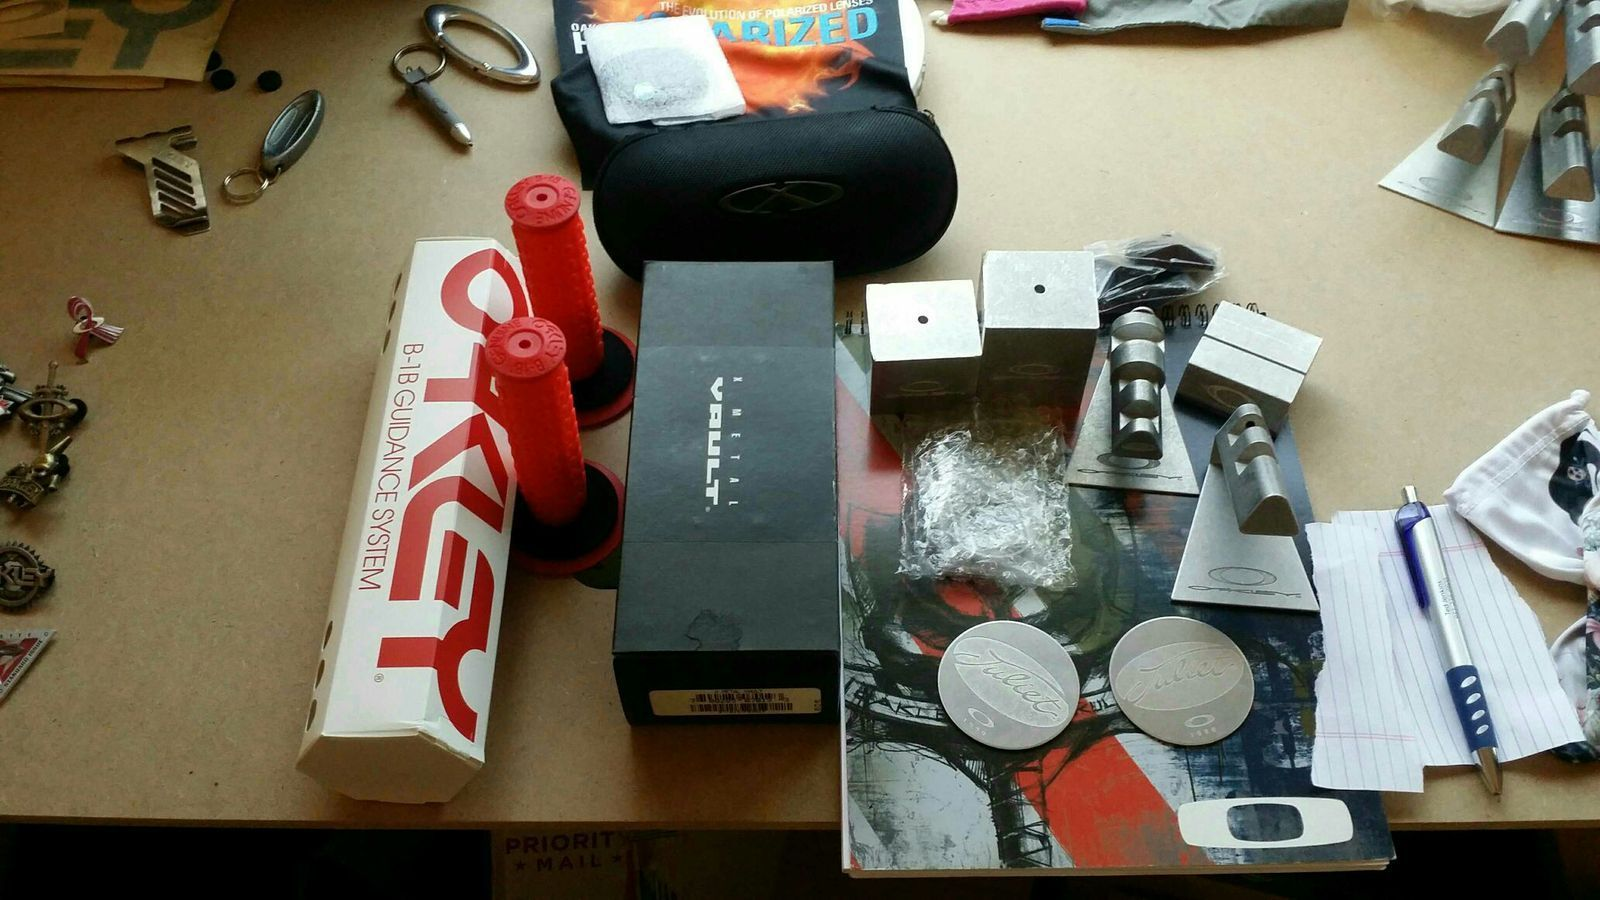 display items, rubbers, lenses and whatever else i can find - ed46a197d9e59b45d782b785c724ed2d.jpg